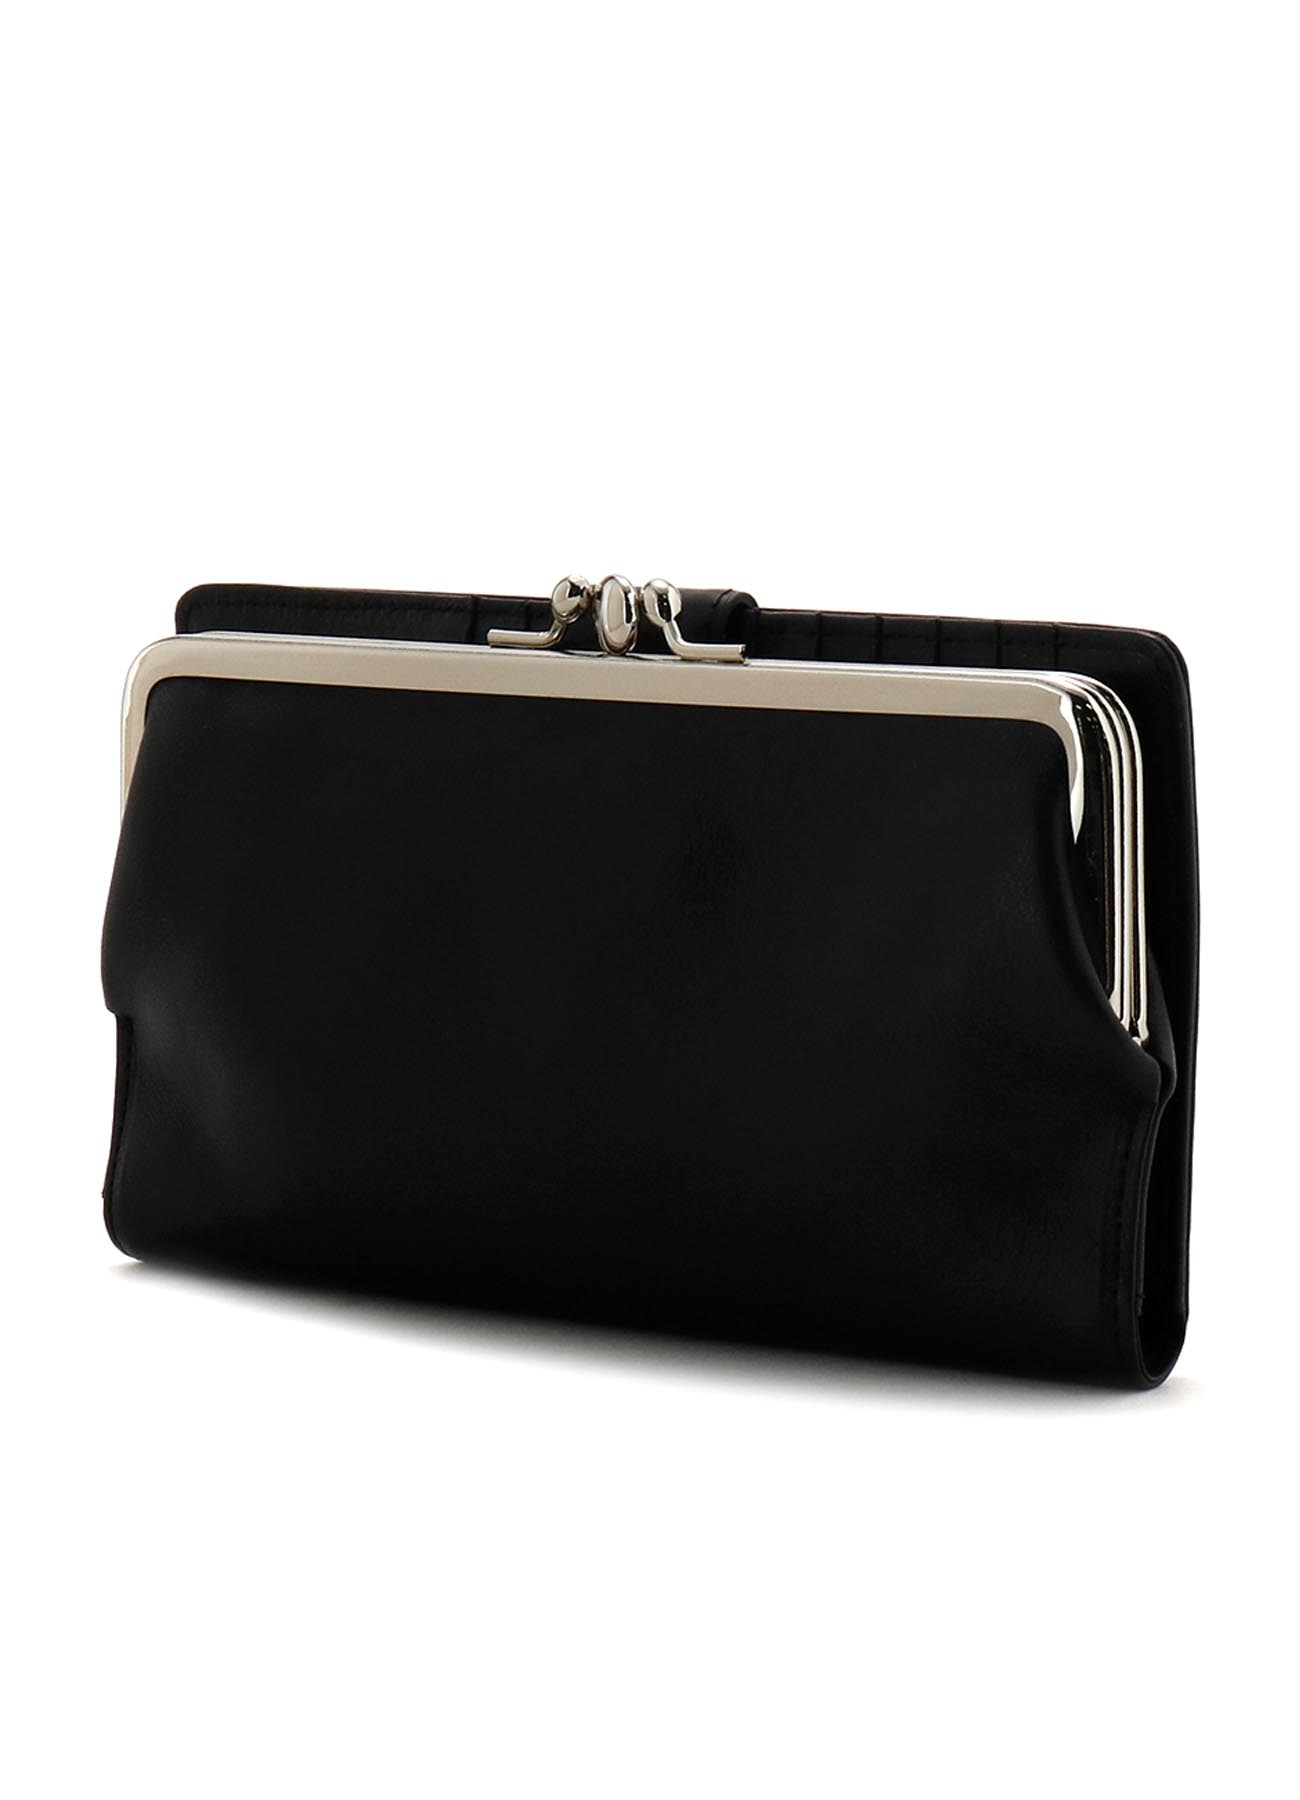 MEDIUM GLOSS LEATHER BASIC CLASP LONG WALLET